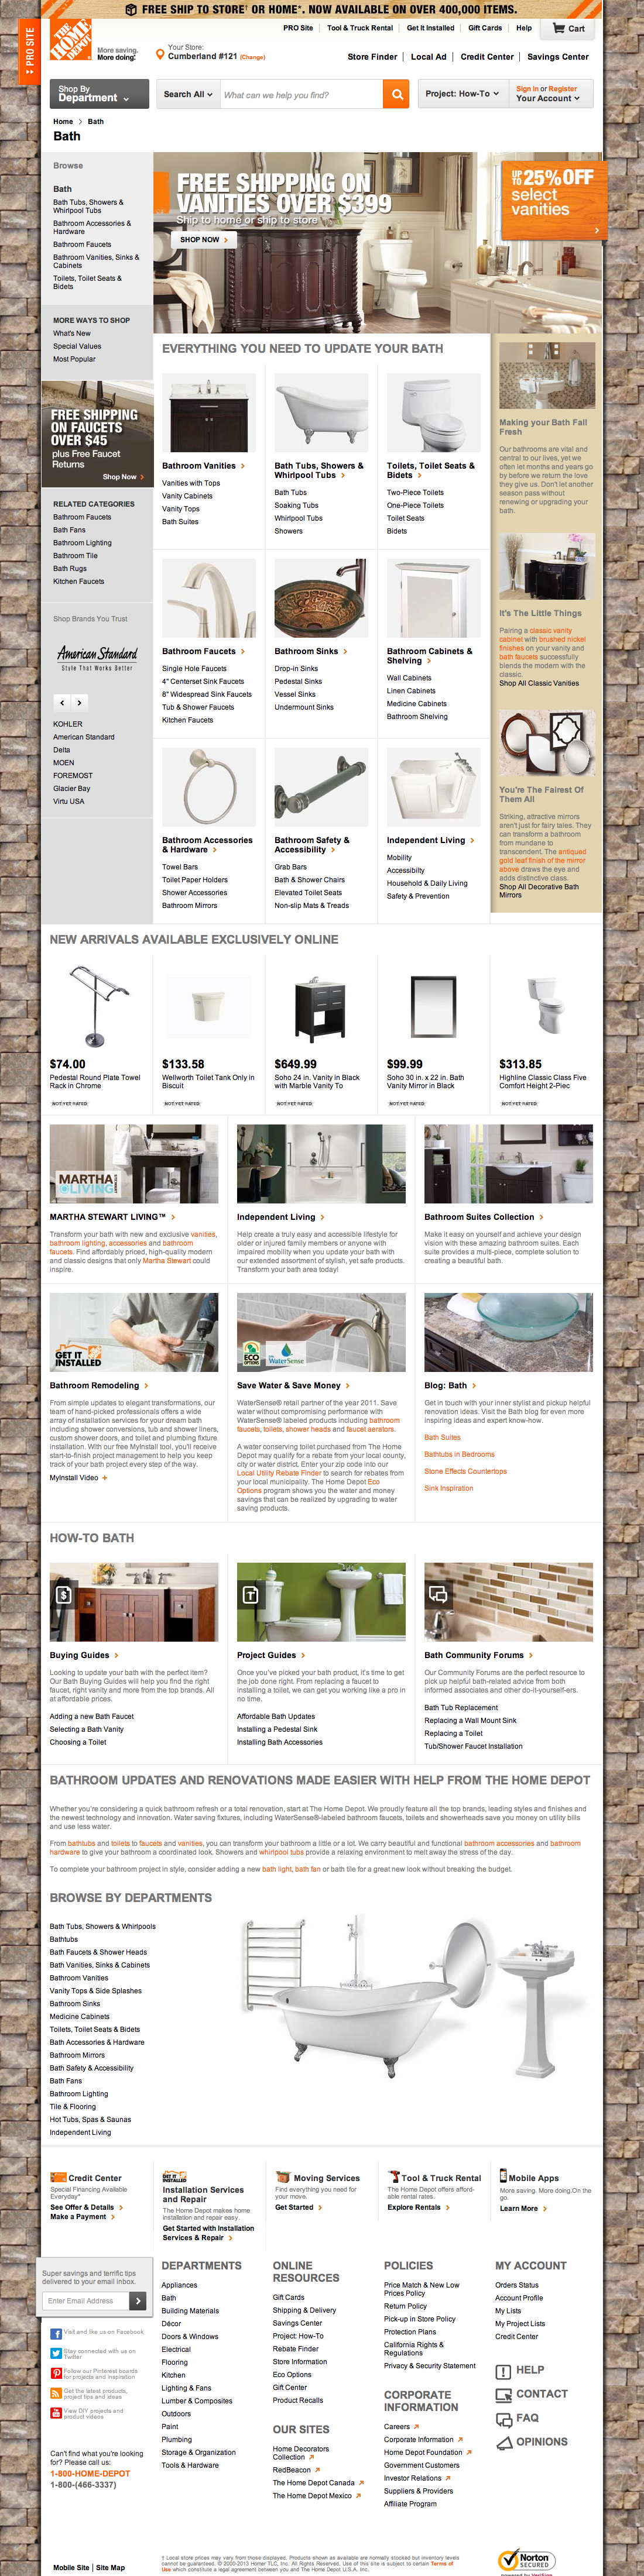 Home Depots Homepage Categories Usability Score